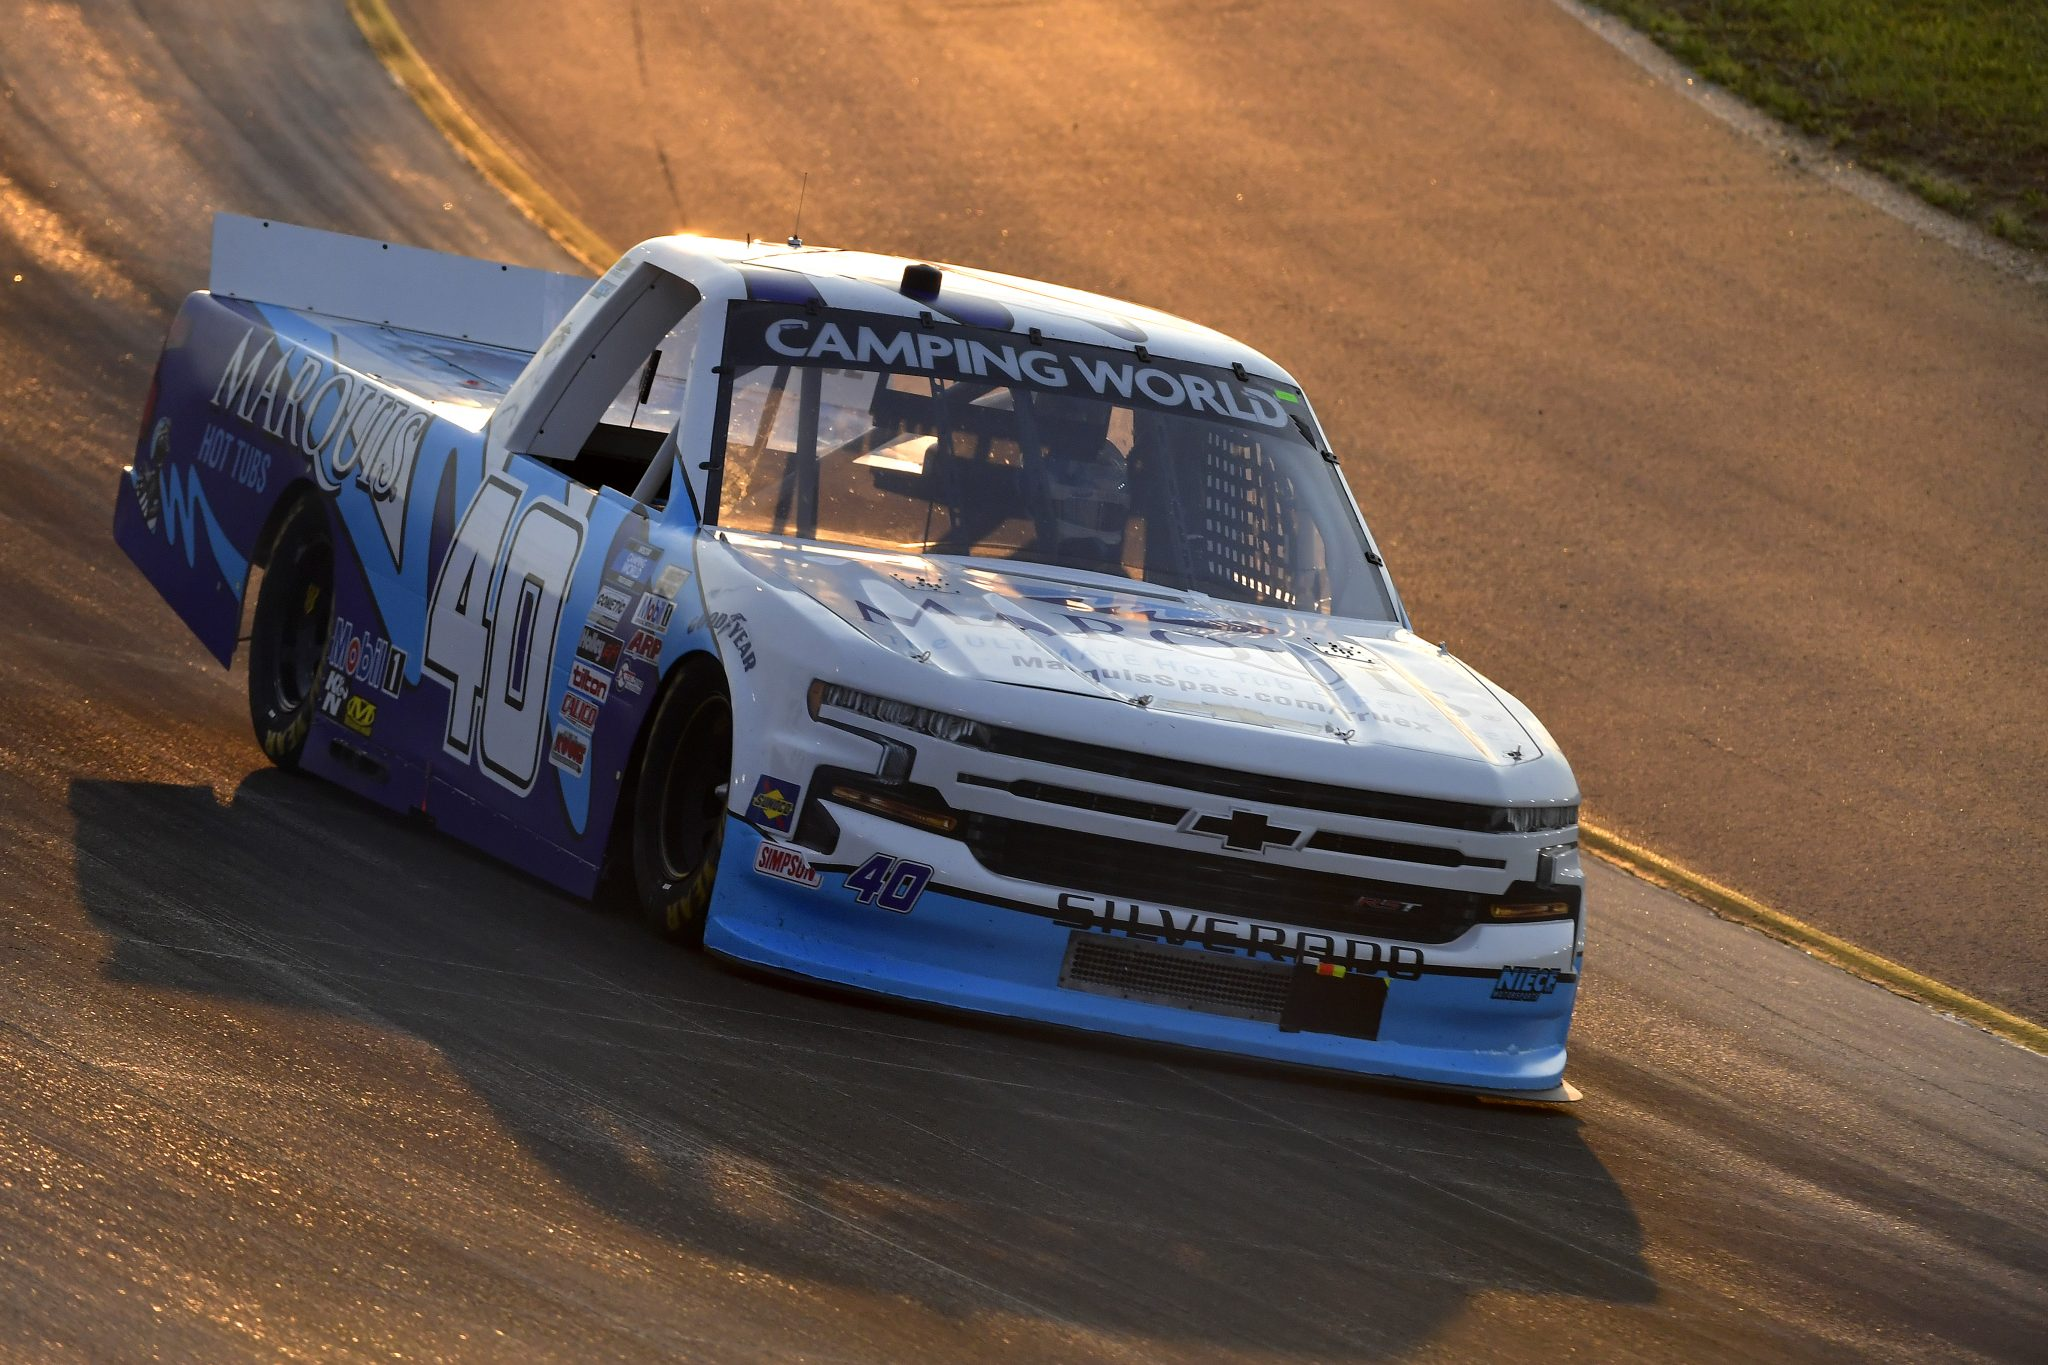 LEBANON, TENNESSEE - JUNE 18: Ryan Truex, driver of the #40 Marquis Spas Chevrolet, drives during the NASCAR Camping World Truck Series Rackley Roofing 200 at Nashville Superspeedway on June 18, 2021 in Lebanon, Tennessee. (Photo by Logan Riely/Getty Images) | Getty Images